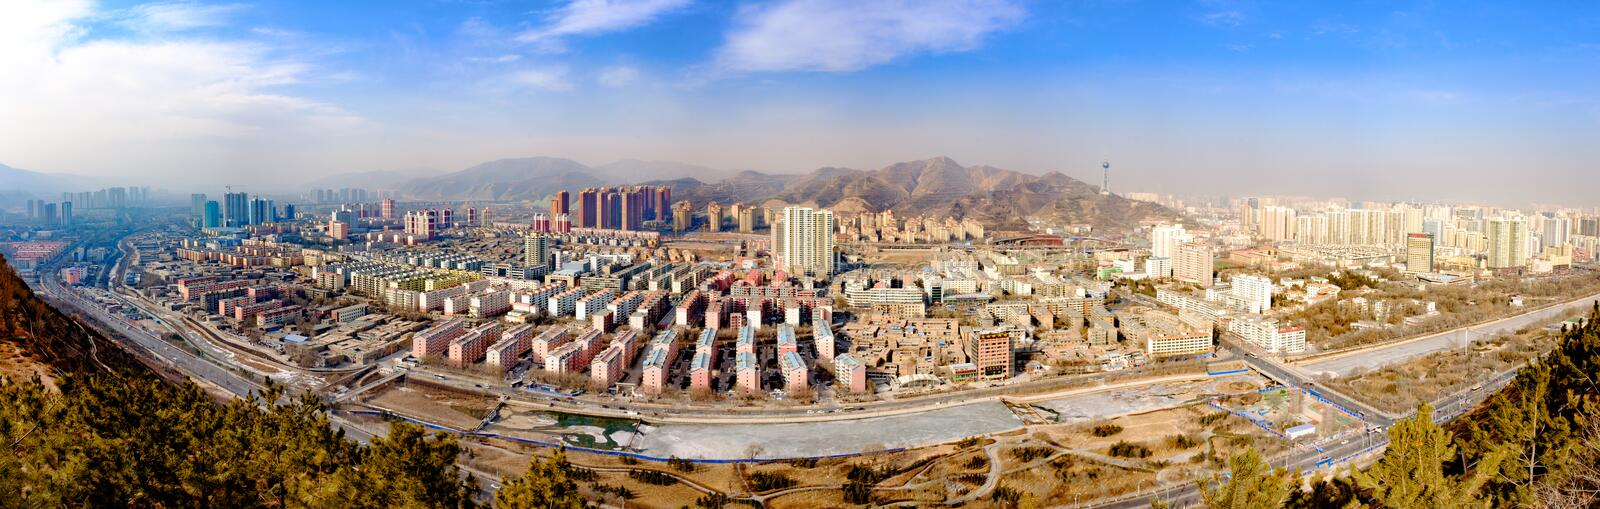 Overlooking the Plateau Pearl - Qinghai, Xining. 。 Xining is a city with a history of more than 2 thousand and 100 years of ancient plateau, called Xiping royalty free stock image